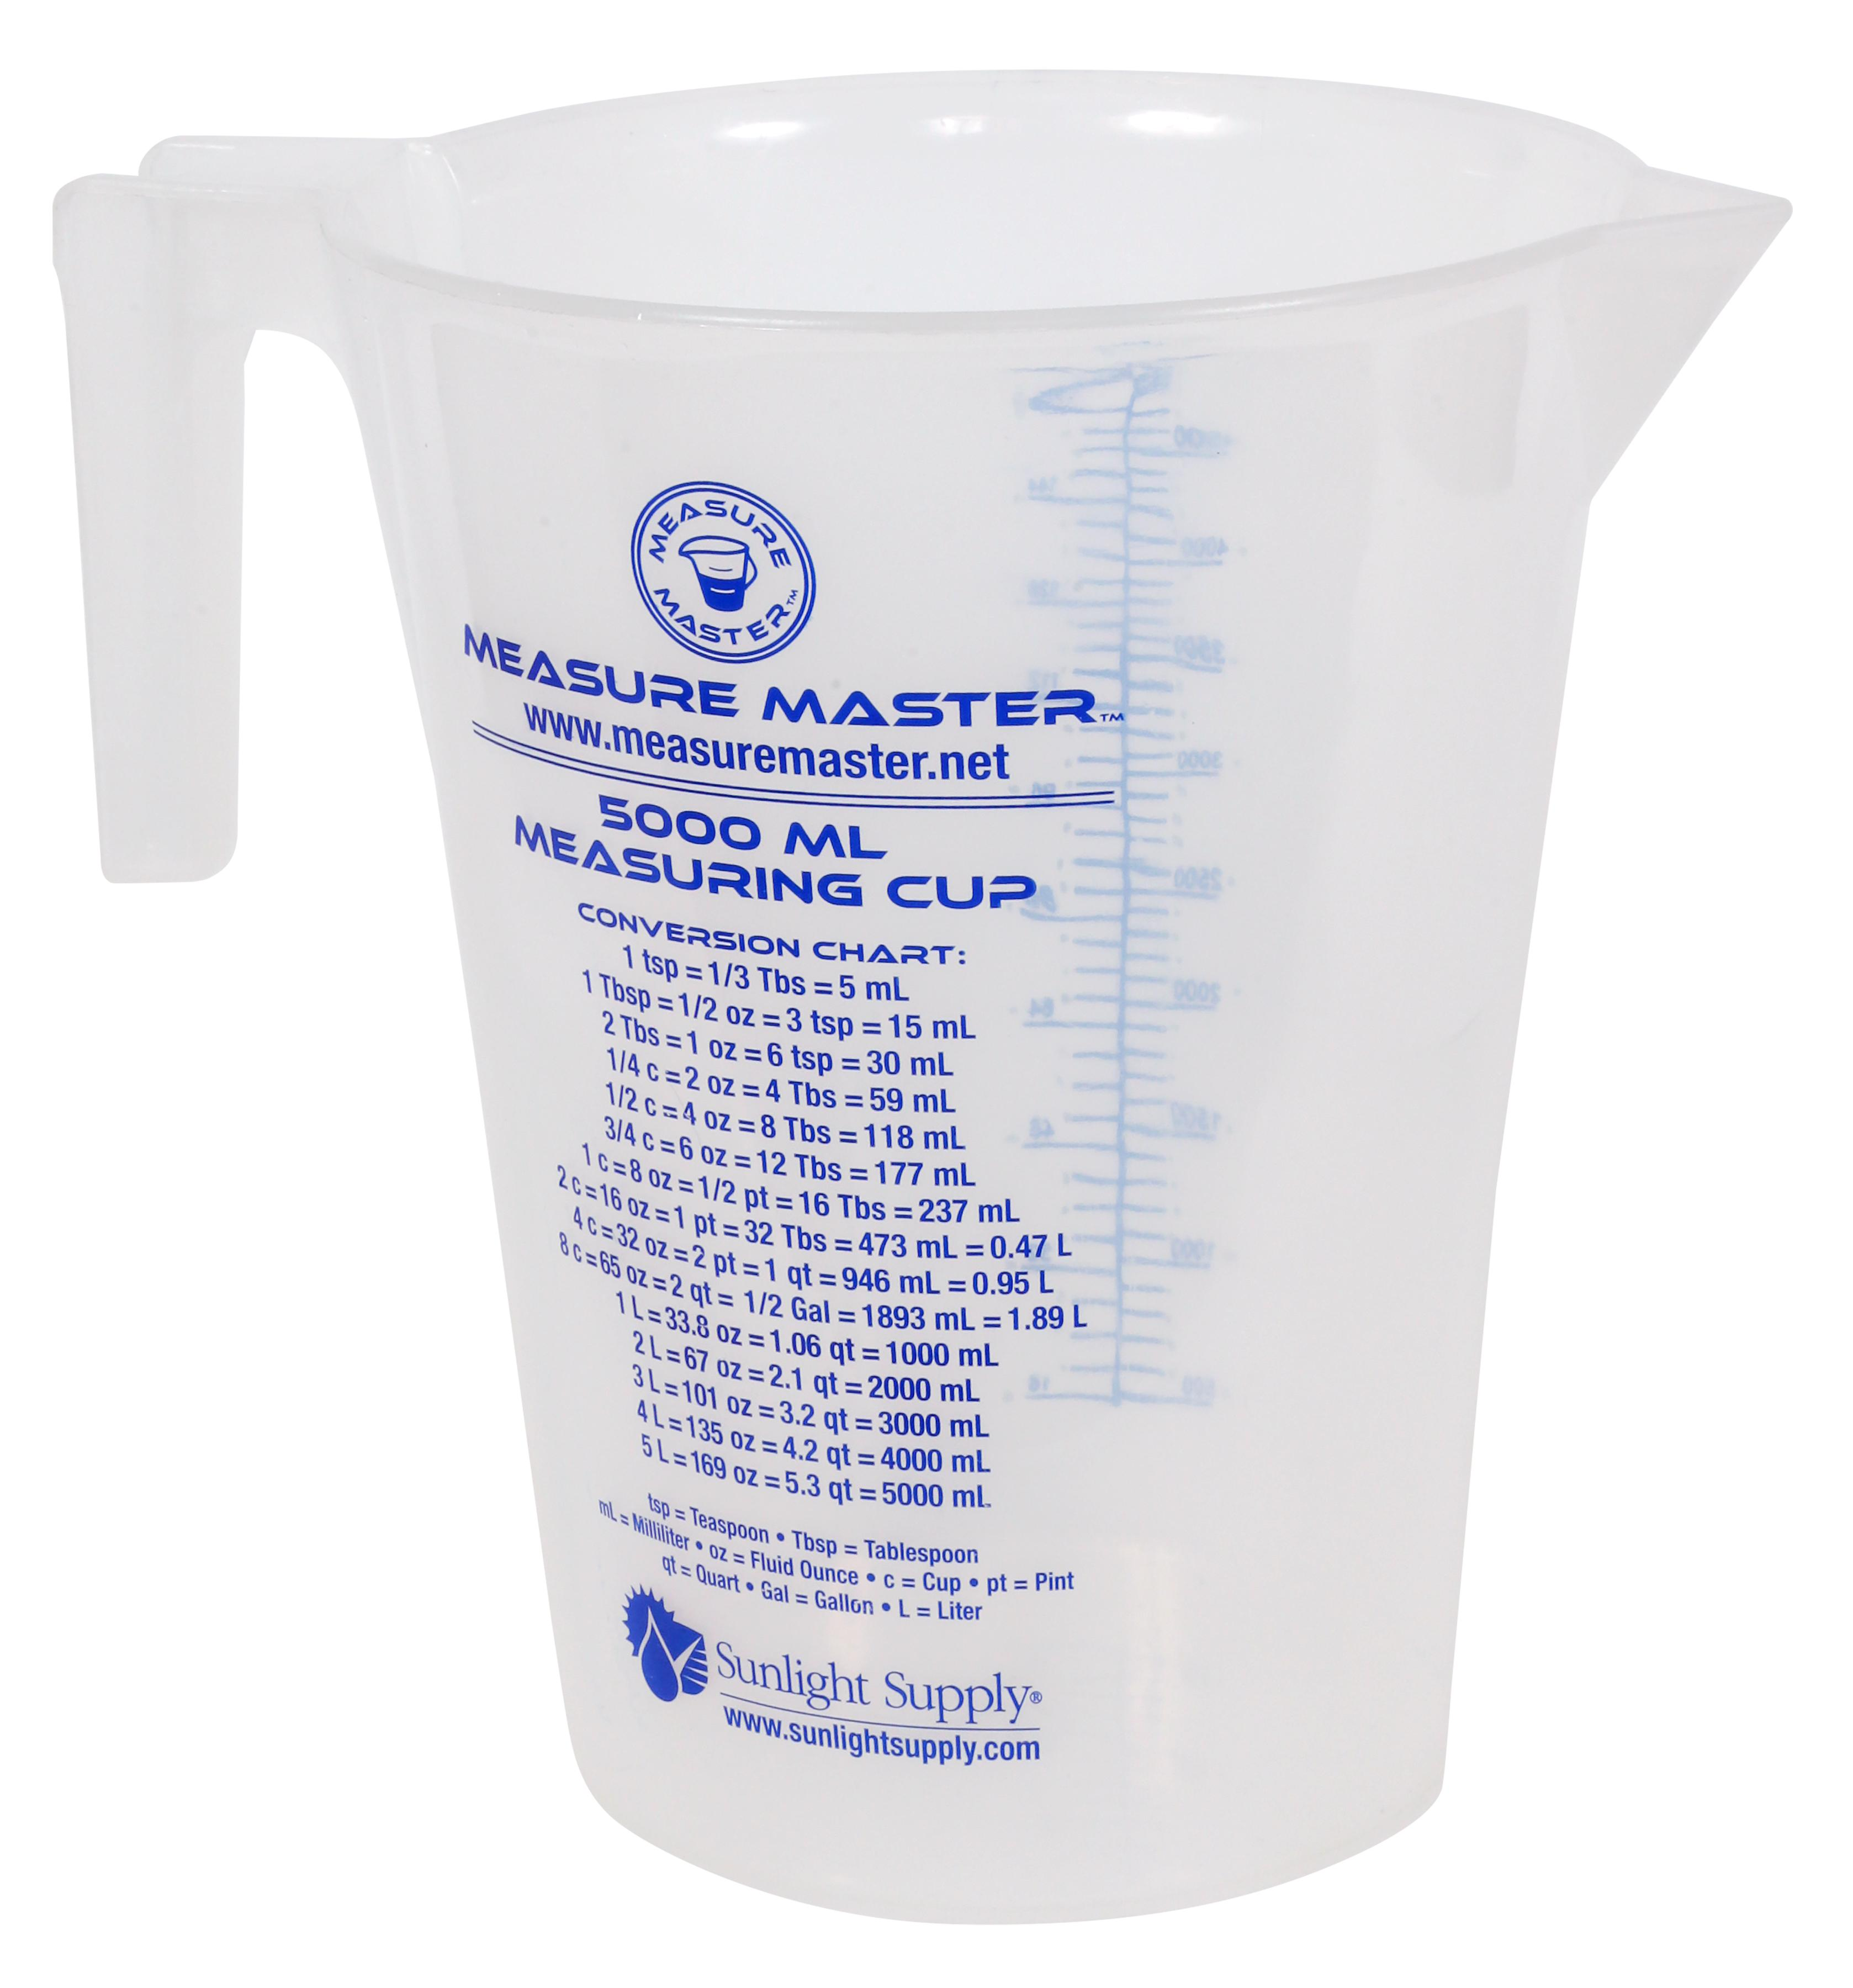 Measure master graduated container 160 oz 5000 ml measure master graduated container 160 oz 5000 ml image 1 nvjuhfo Images